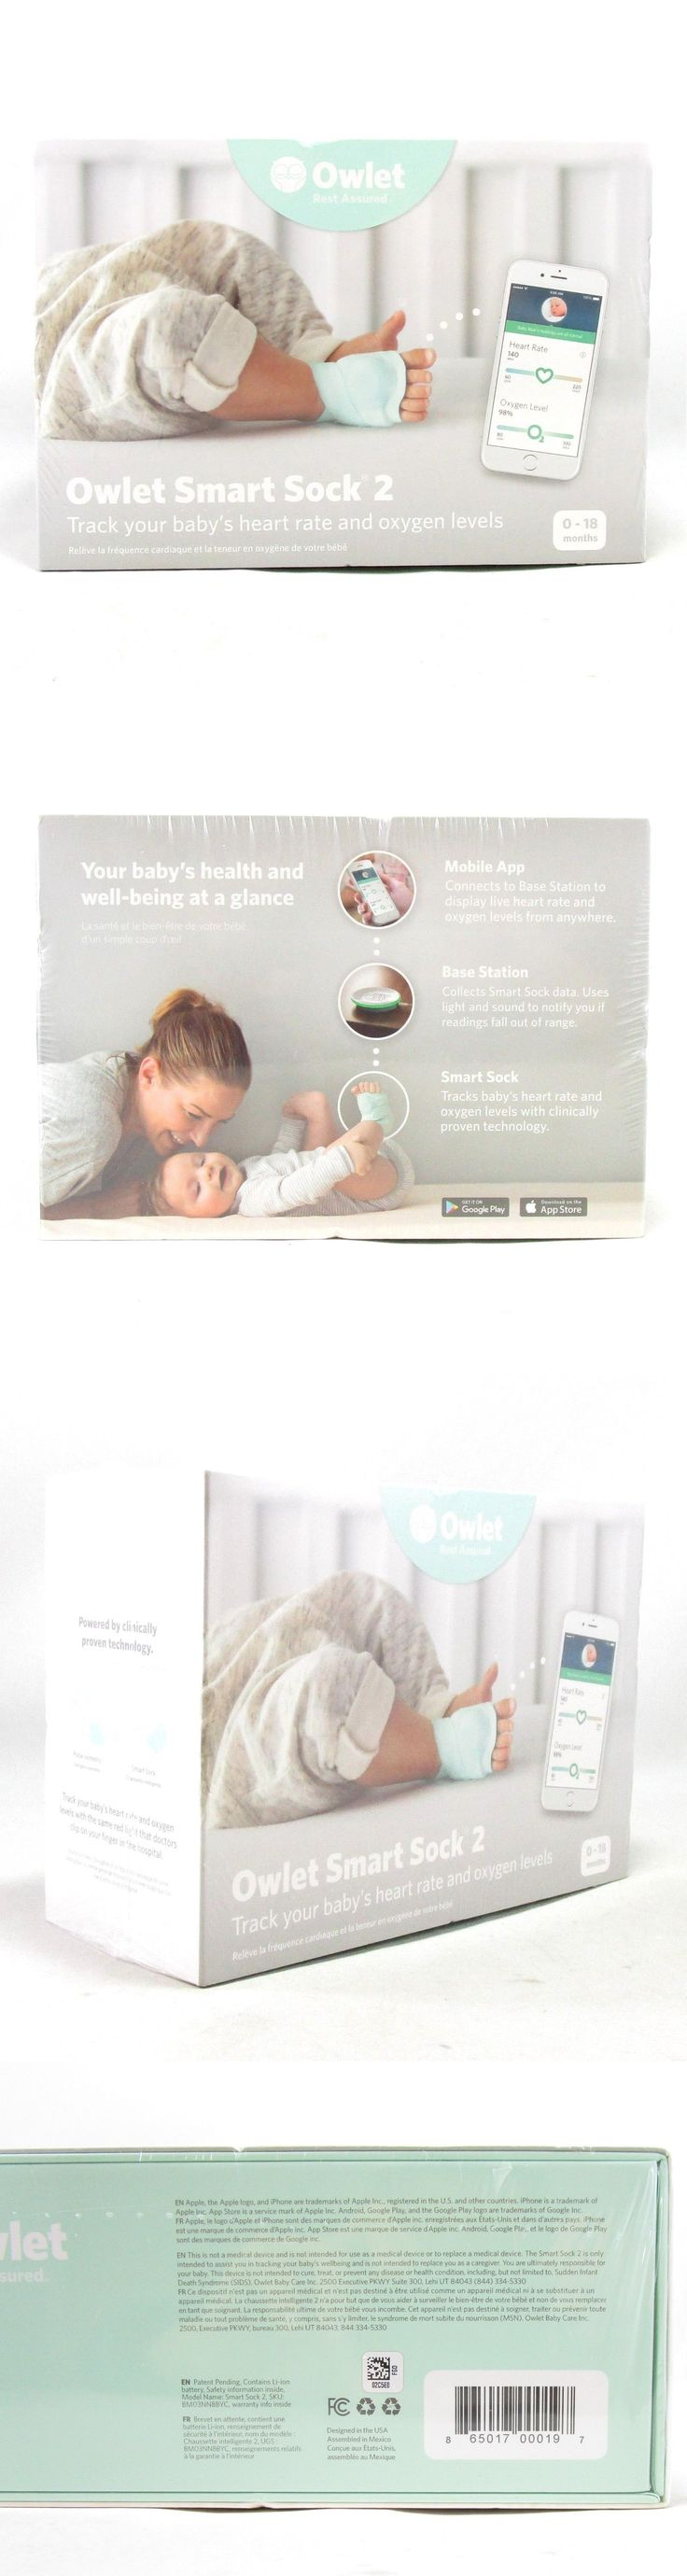 355 best Baby Monitors images on Pinterest